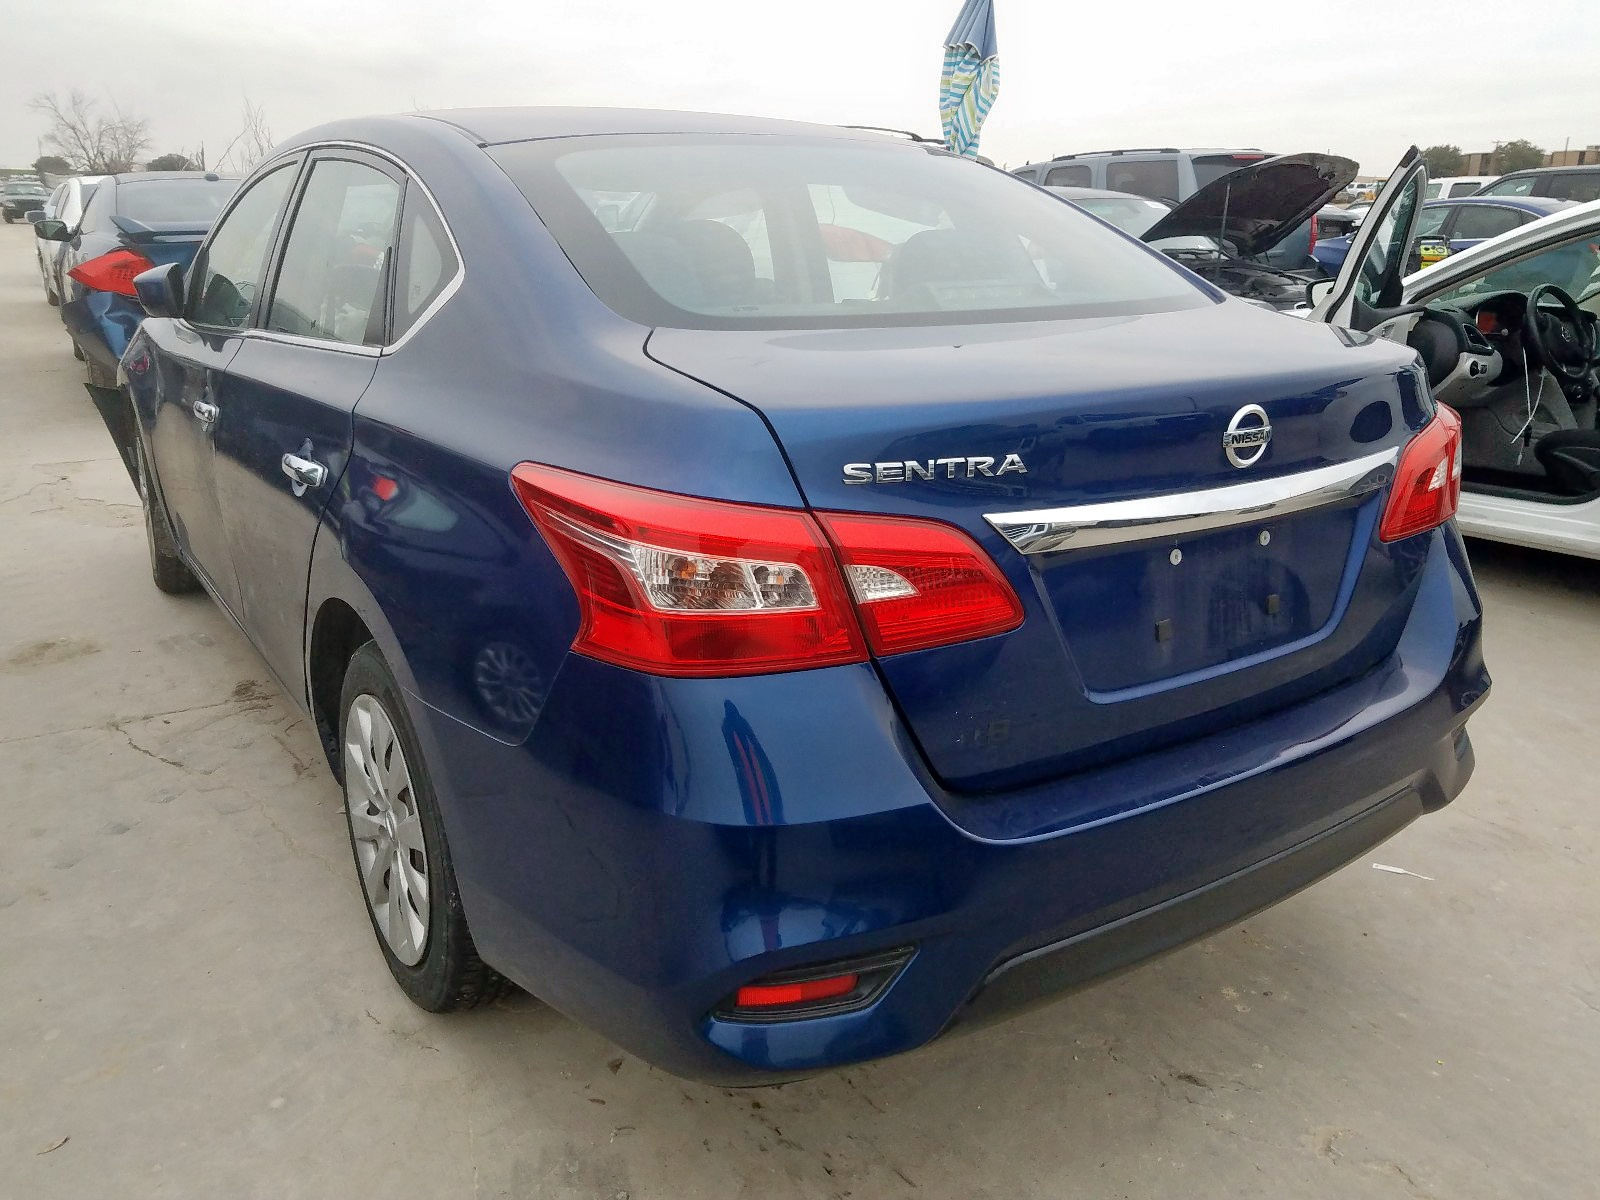 3N1AB7AP0GY210796 - 2016 Nissan Sentra S 1.8L [Angle] View